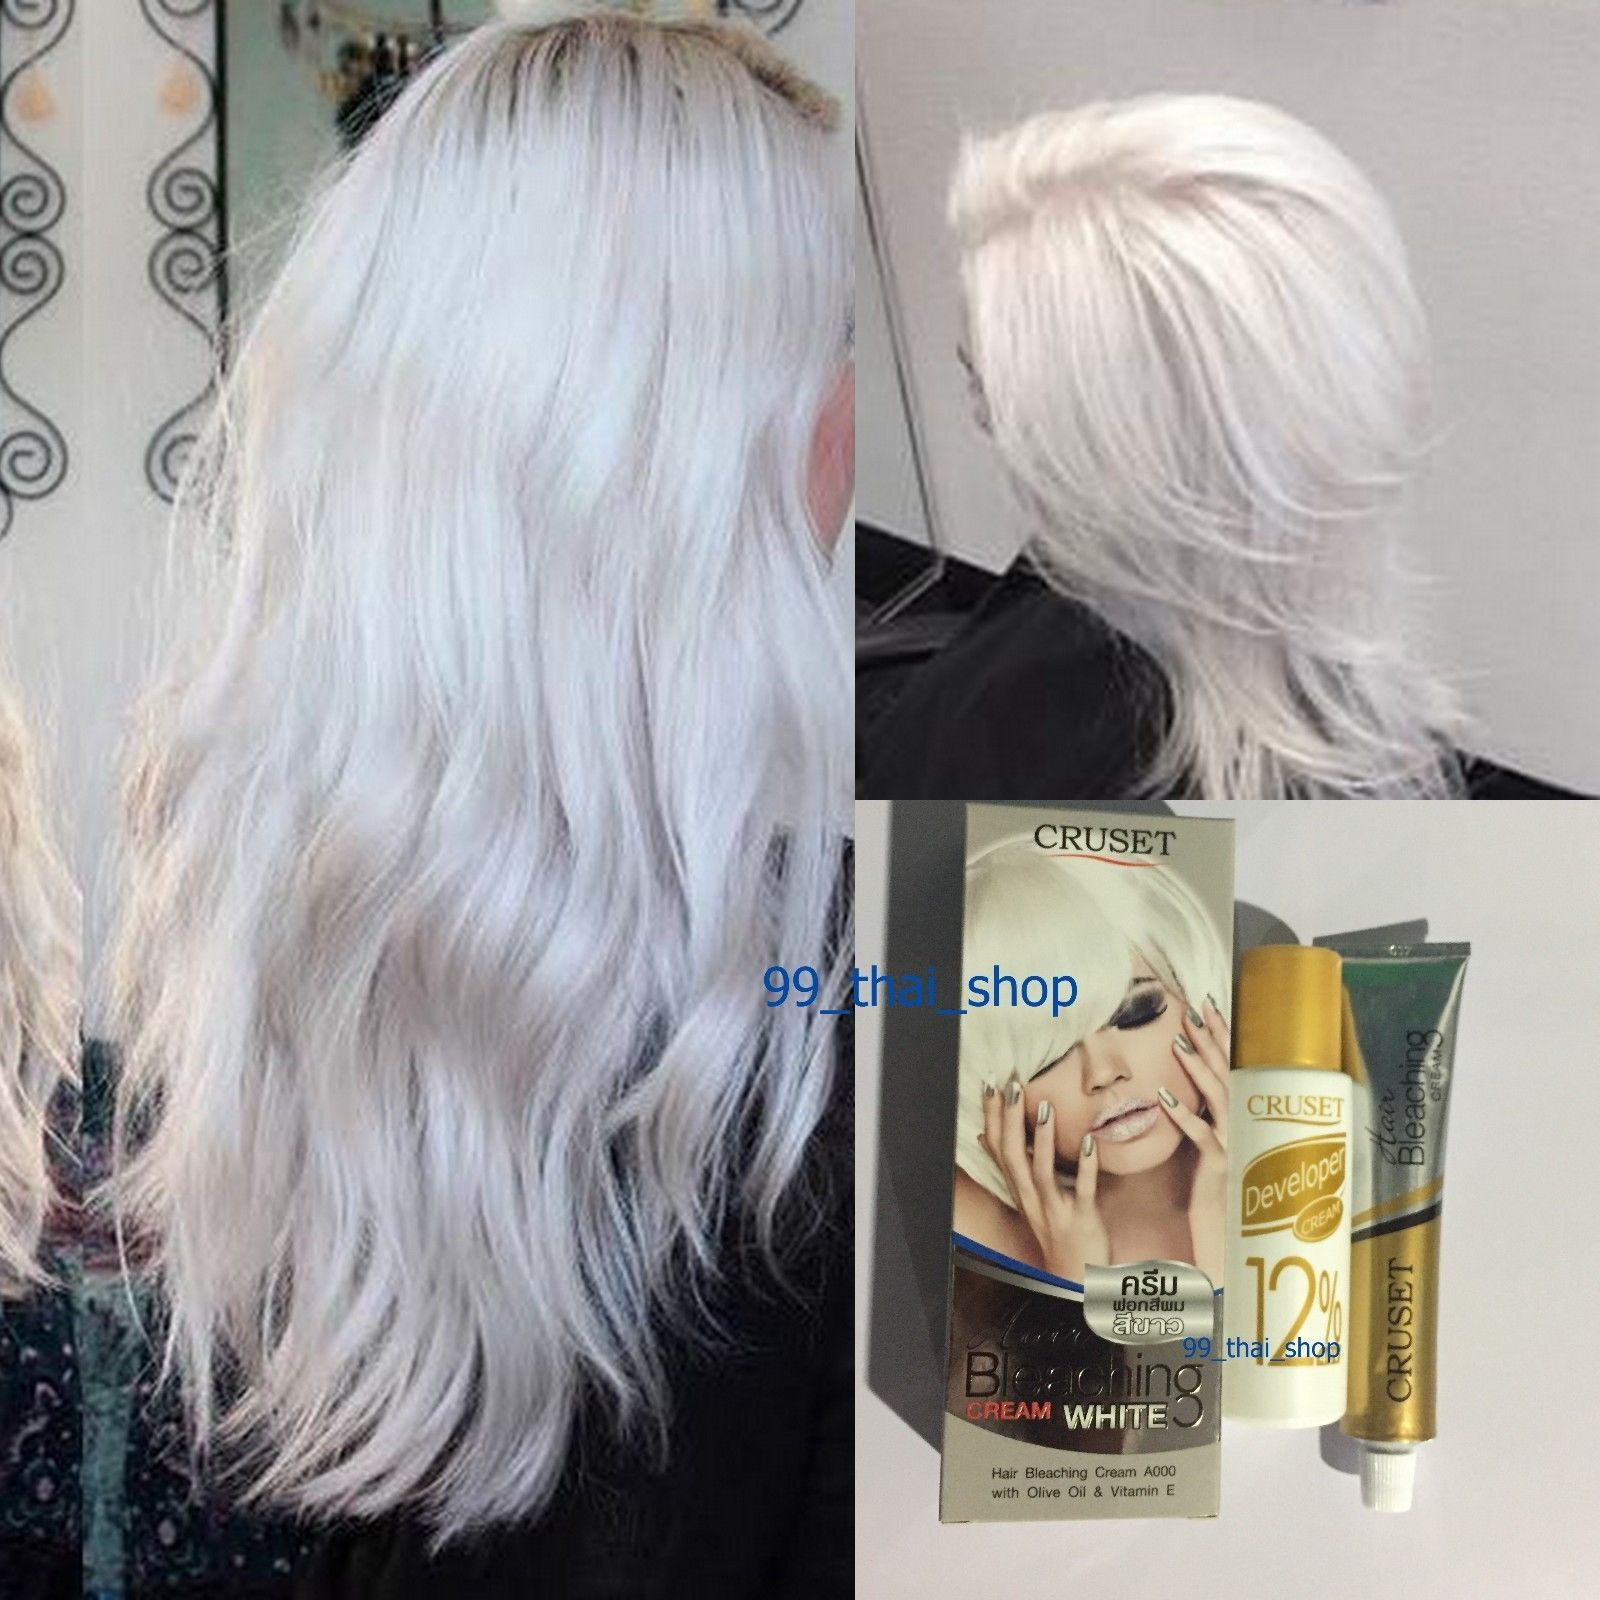 White Color Permanent Hair Dye Cream Cruset With Argan Oil White